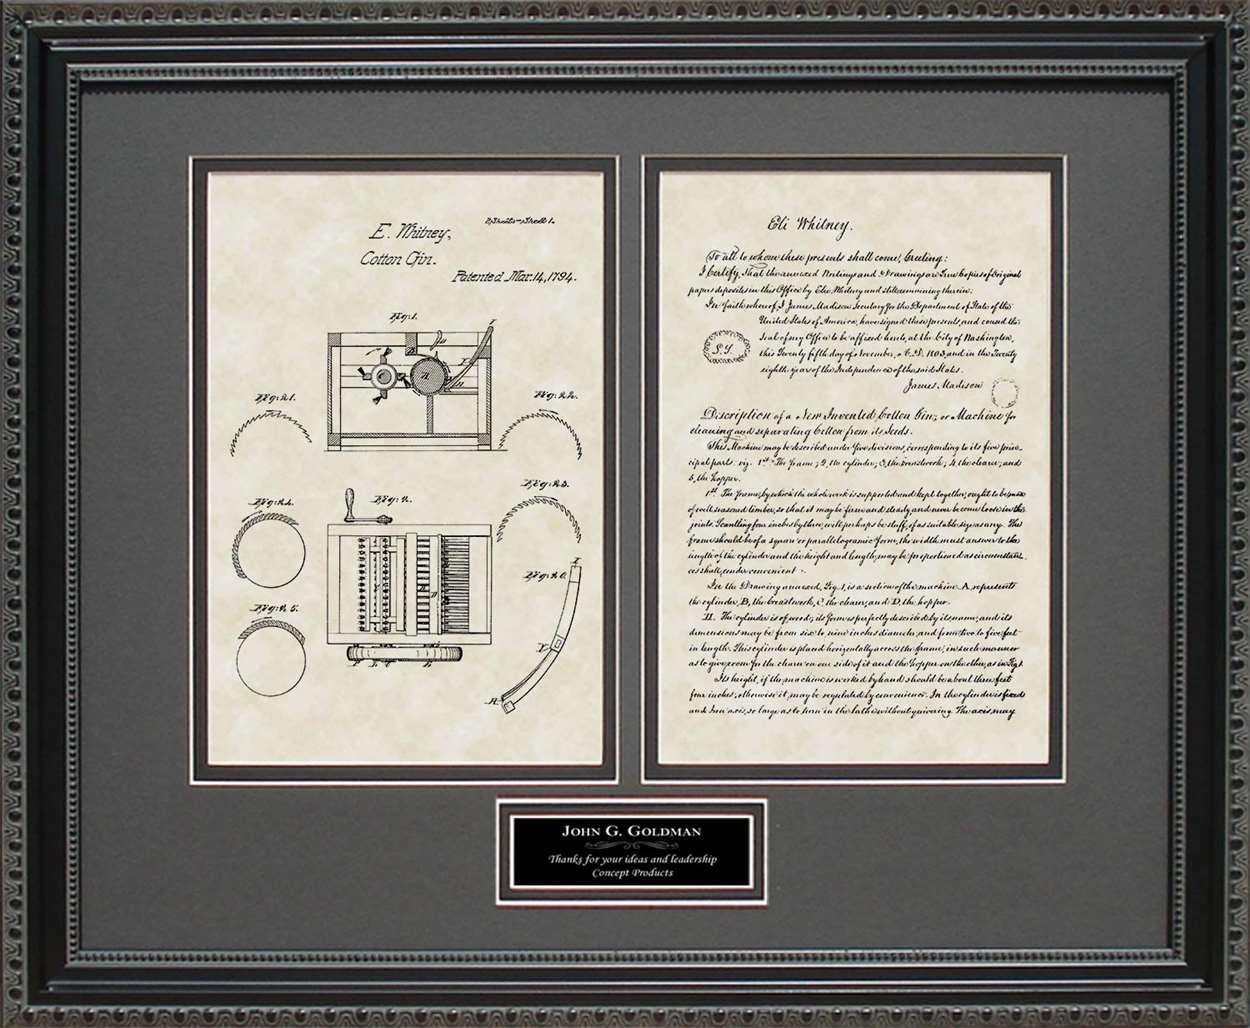 Personalized Cotton Gin Patent, Art & Copy, Whitney, 1794